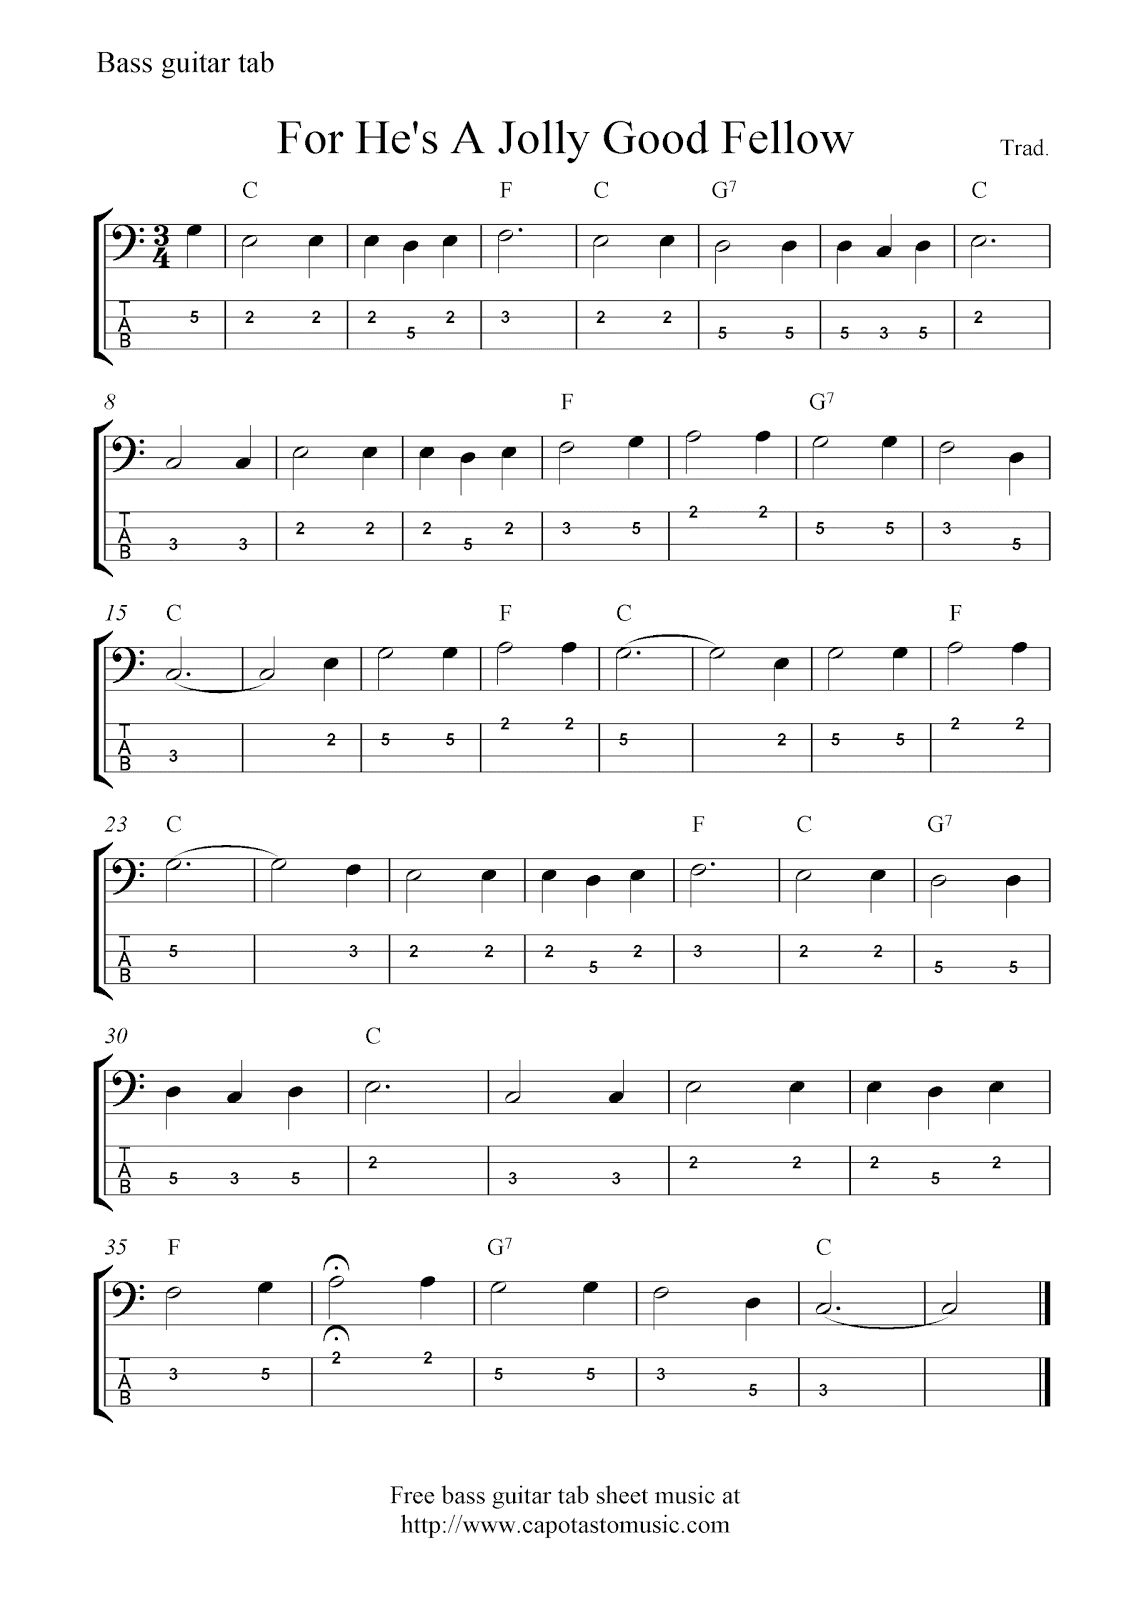 Free bass guitar tab sheet music, For He's A Jolly Good Fellow